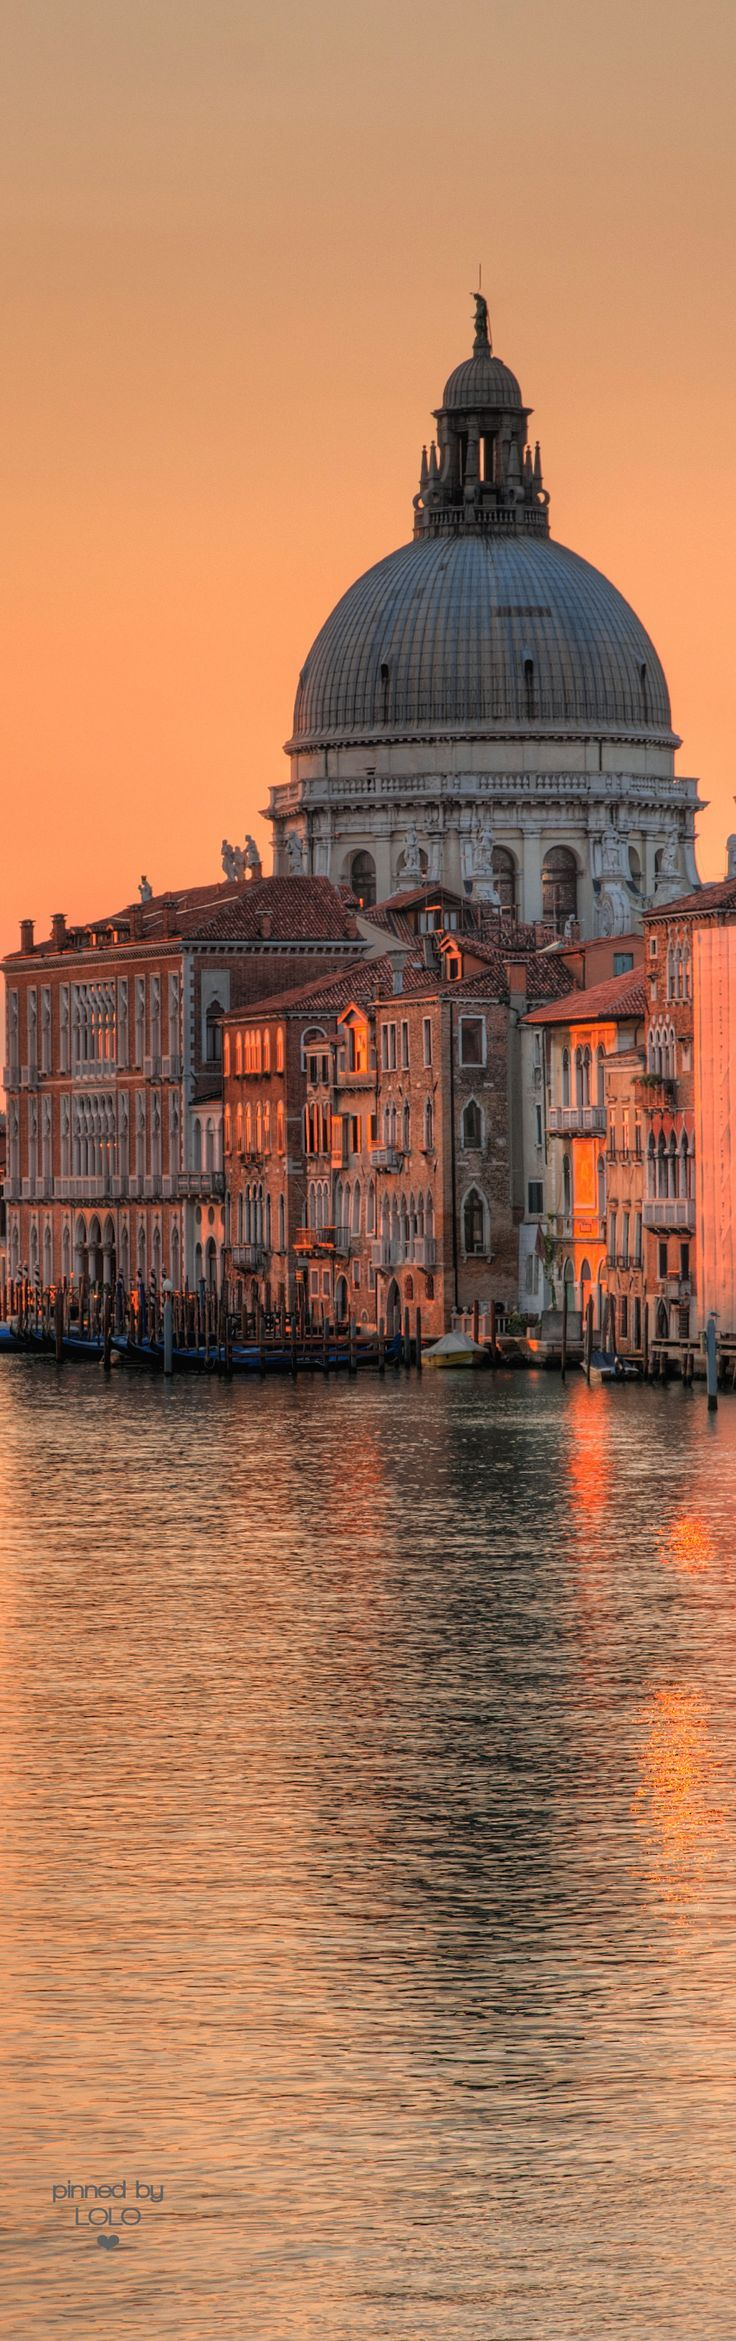 Sunrise at the Grand Canal and the Church of Santa Maria della Salute - Venice, Italy #travel